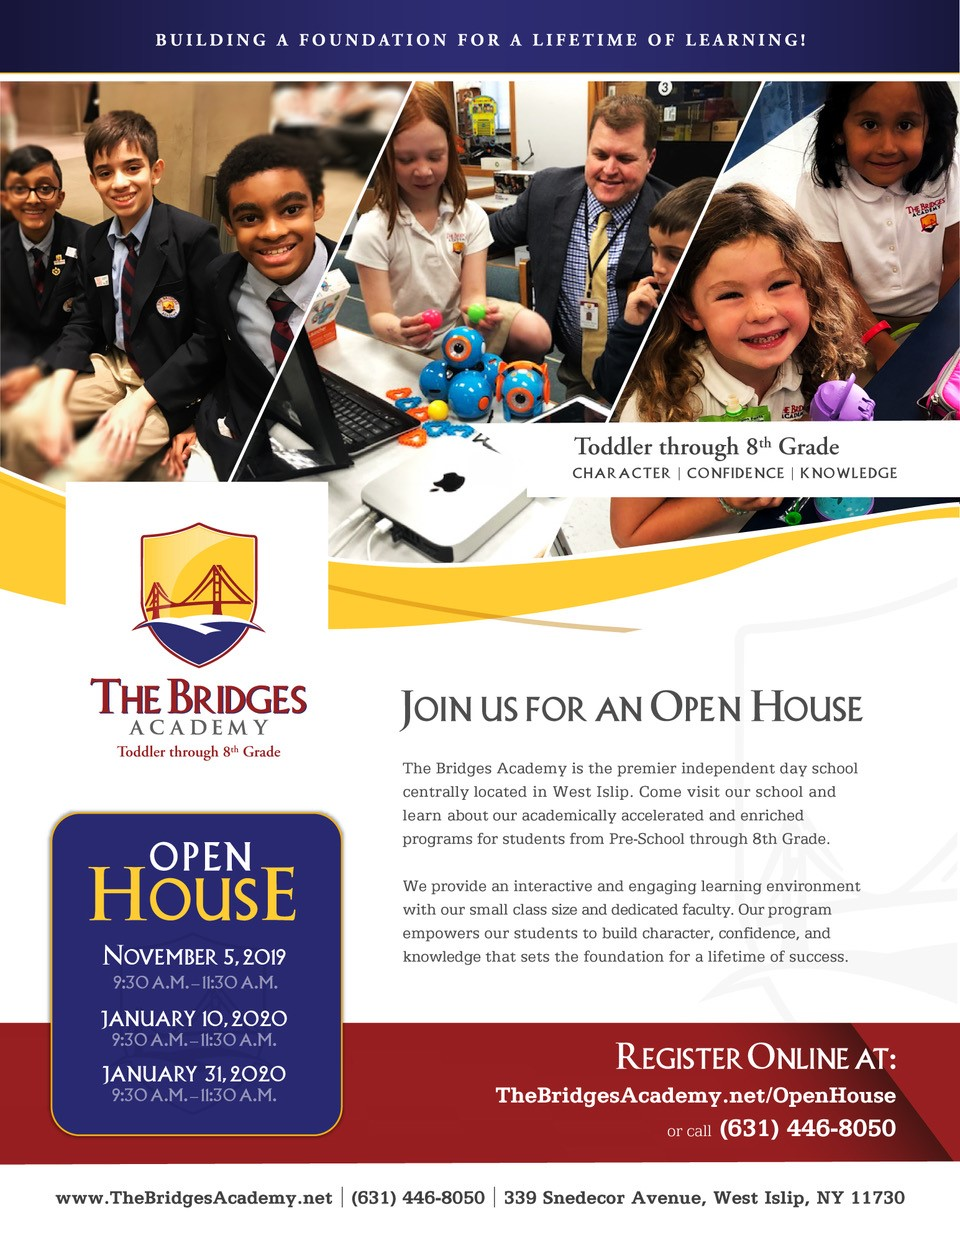 The Bridges Academy Open House at The Bridges Academy